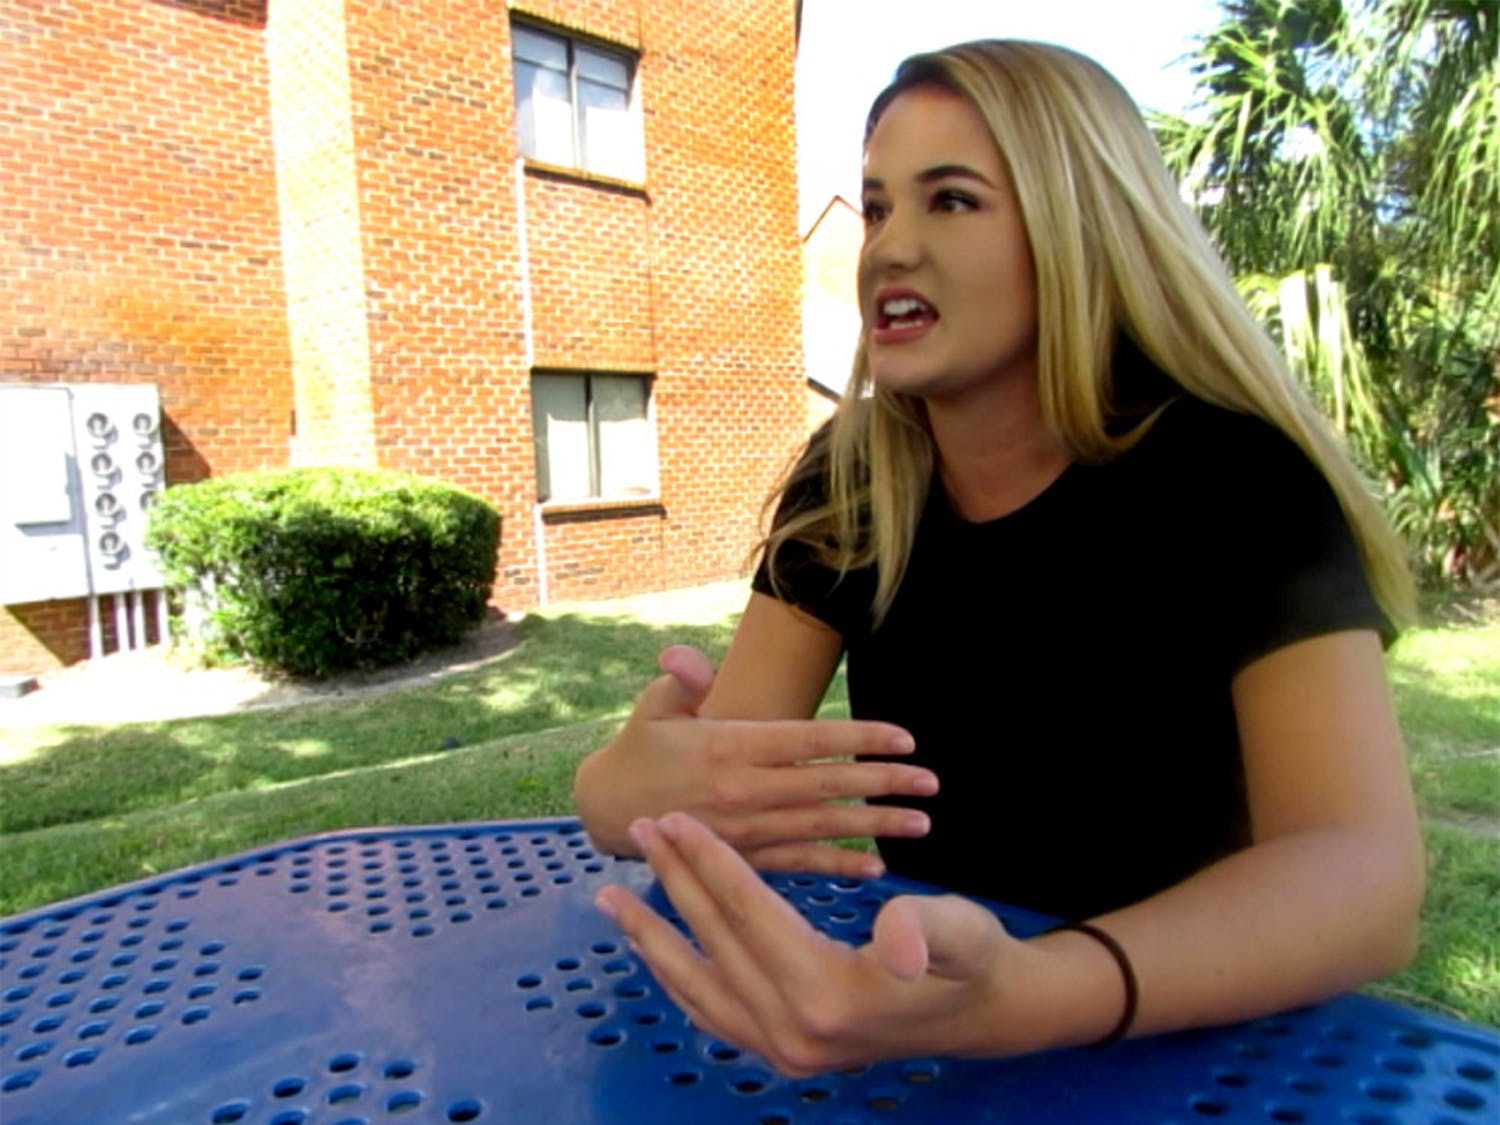 Olivia Kabat tells the story of her former substance abuse disorder at the UF Health Florida Recovery Center. Kabat, a 22-year-old UF telecommunication fifth year, has been sober for more than 14 months.